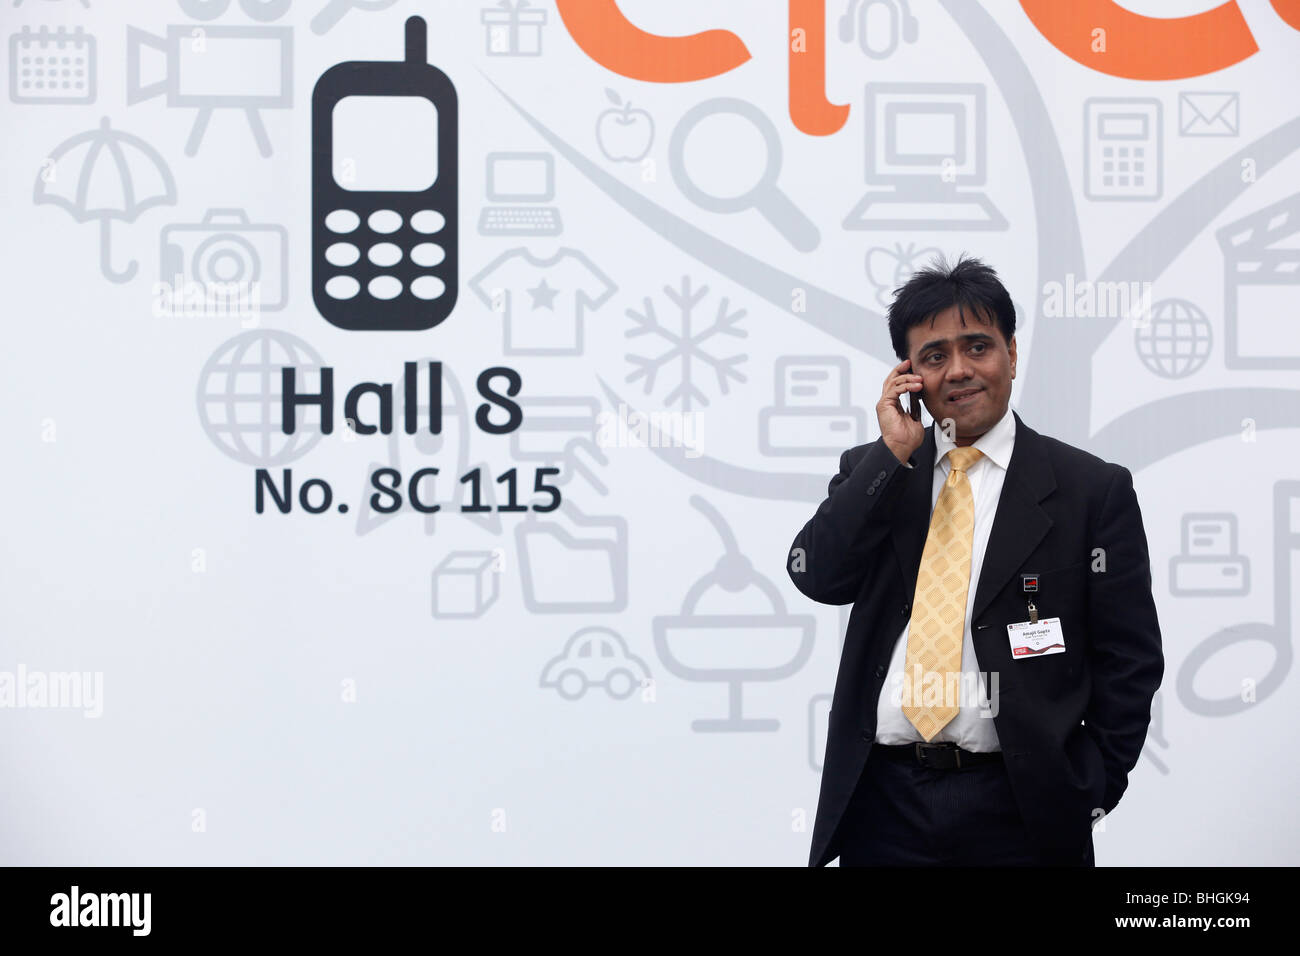 The Mobile World Congress 2010 reunites the latest developments in wireless industry. - Stock Image